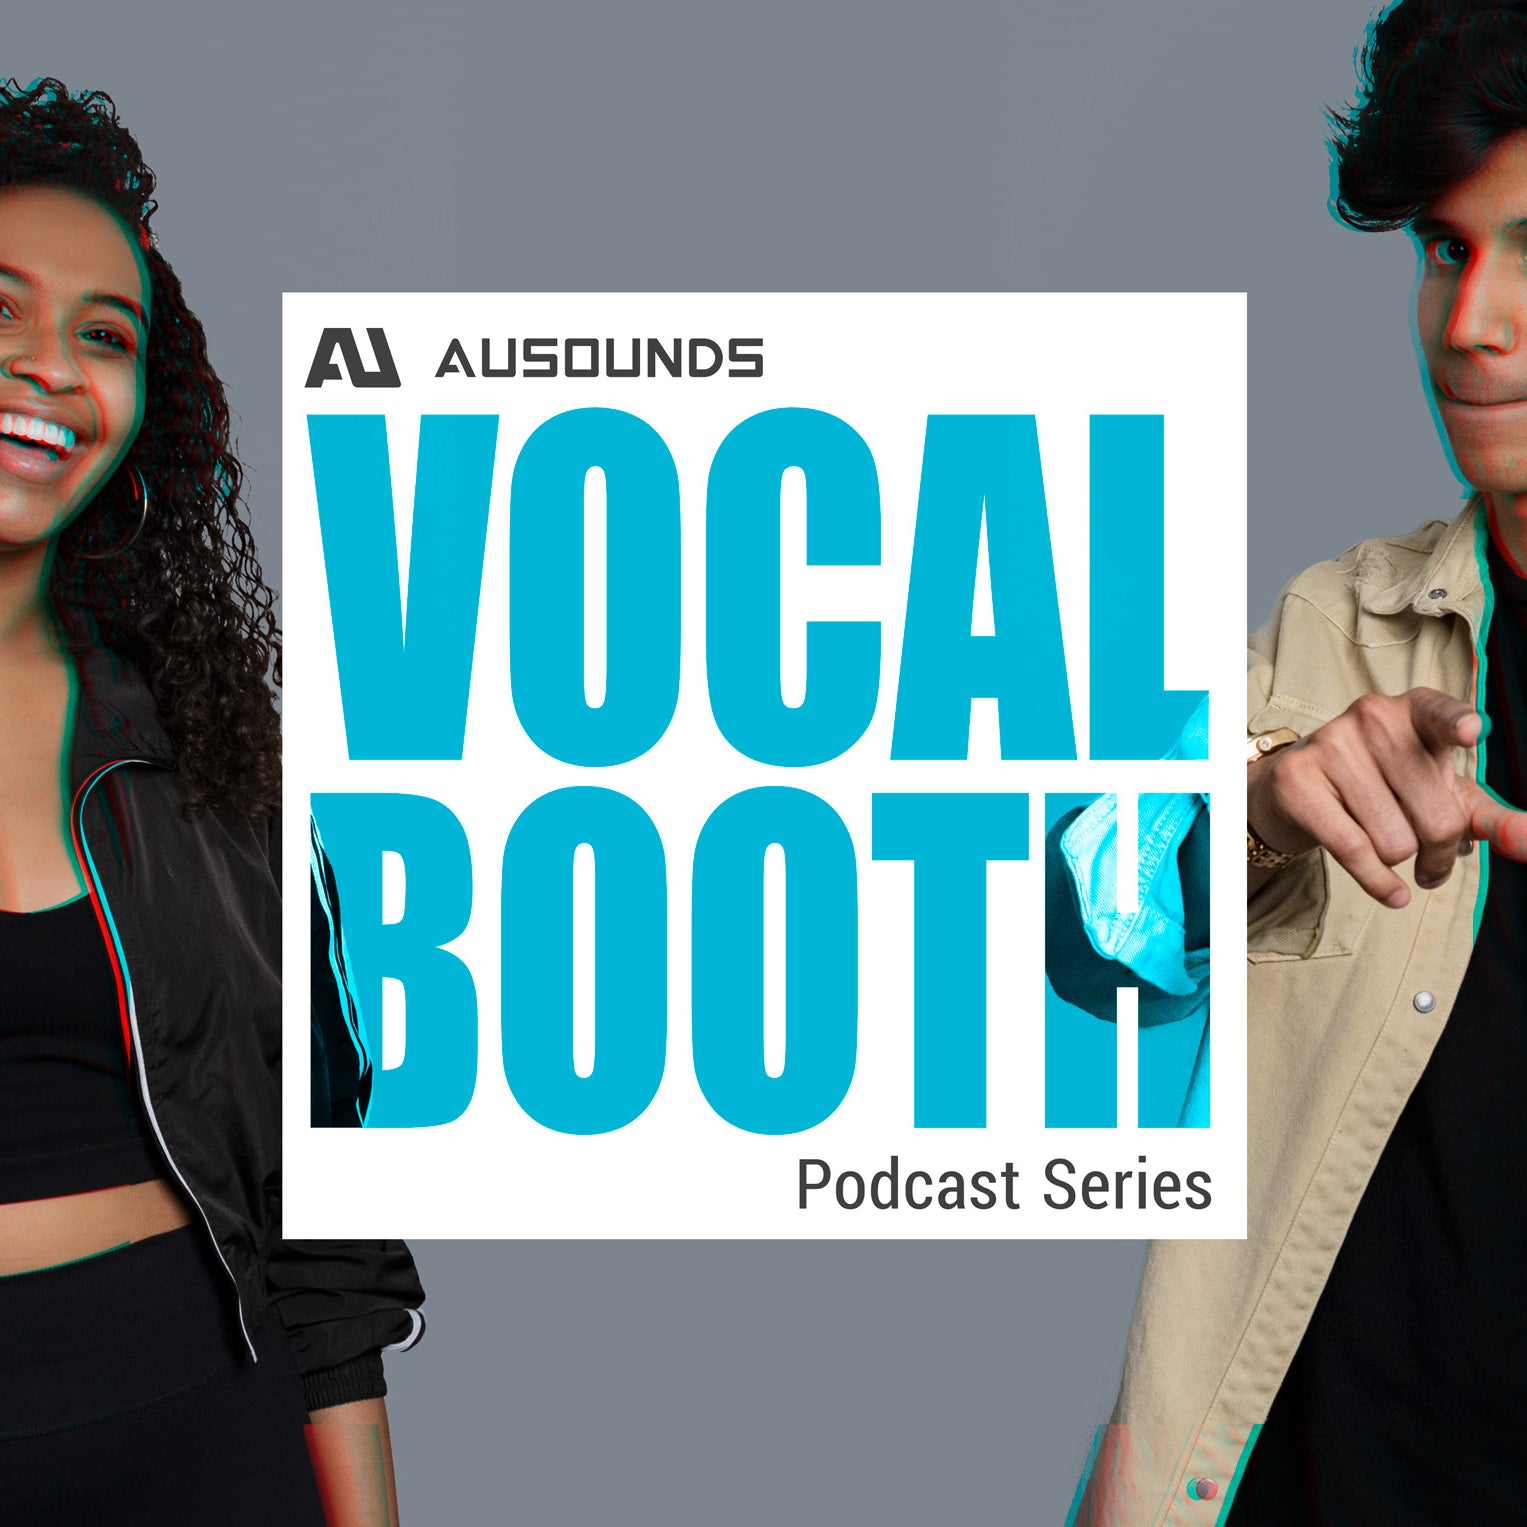 Ausounds Vocal Booth